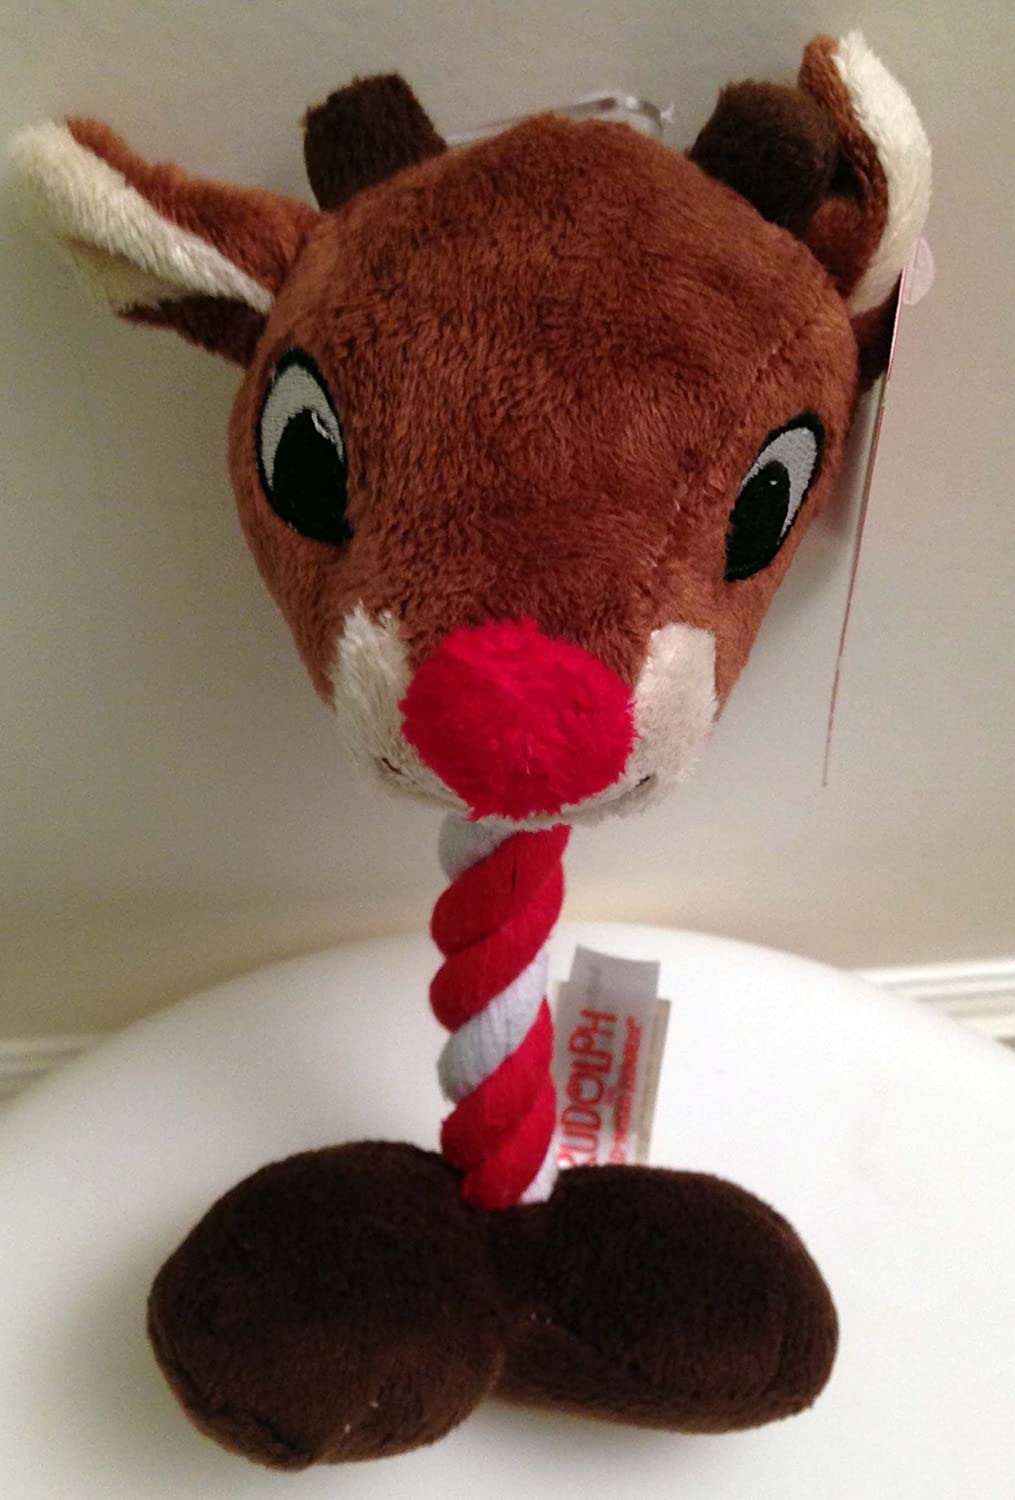 Rudolph The RedNased Reindeer Dog Rope Chew Toy by Rudolph the Red Nased Reindeer